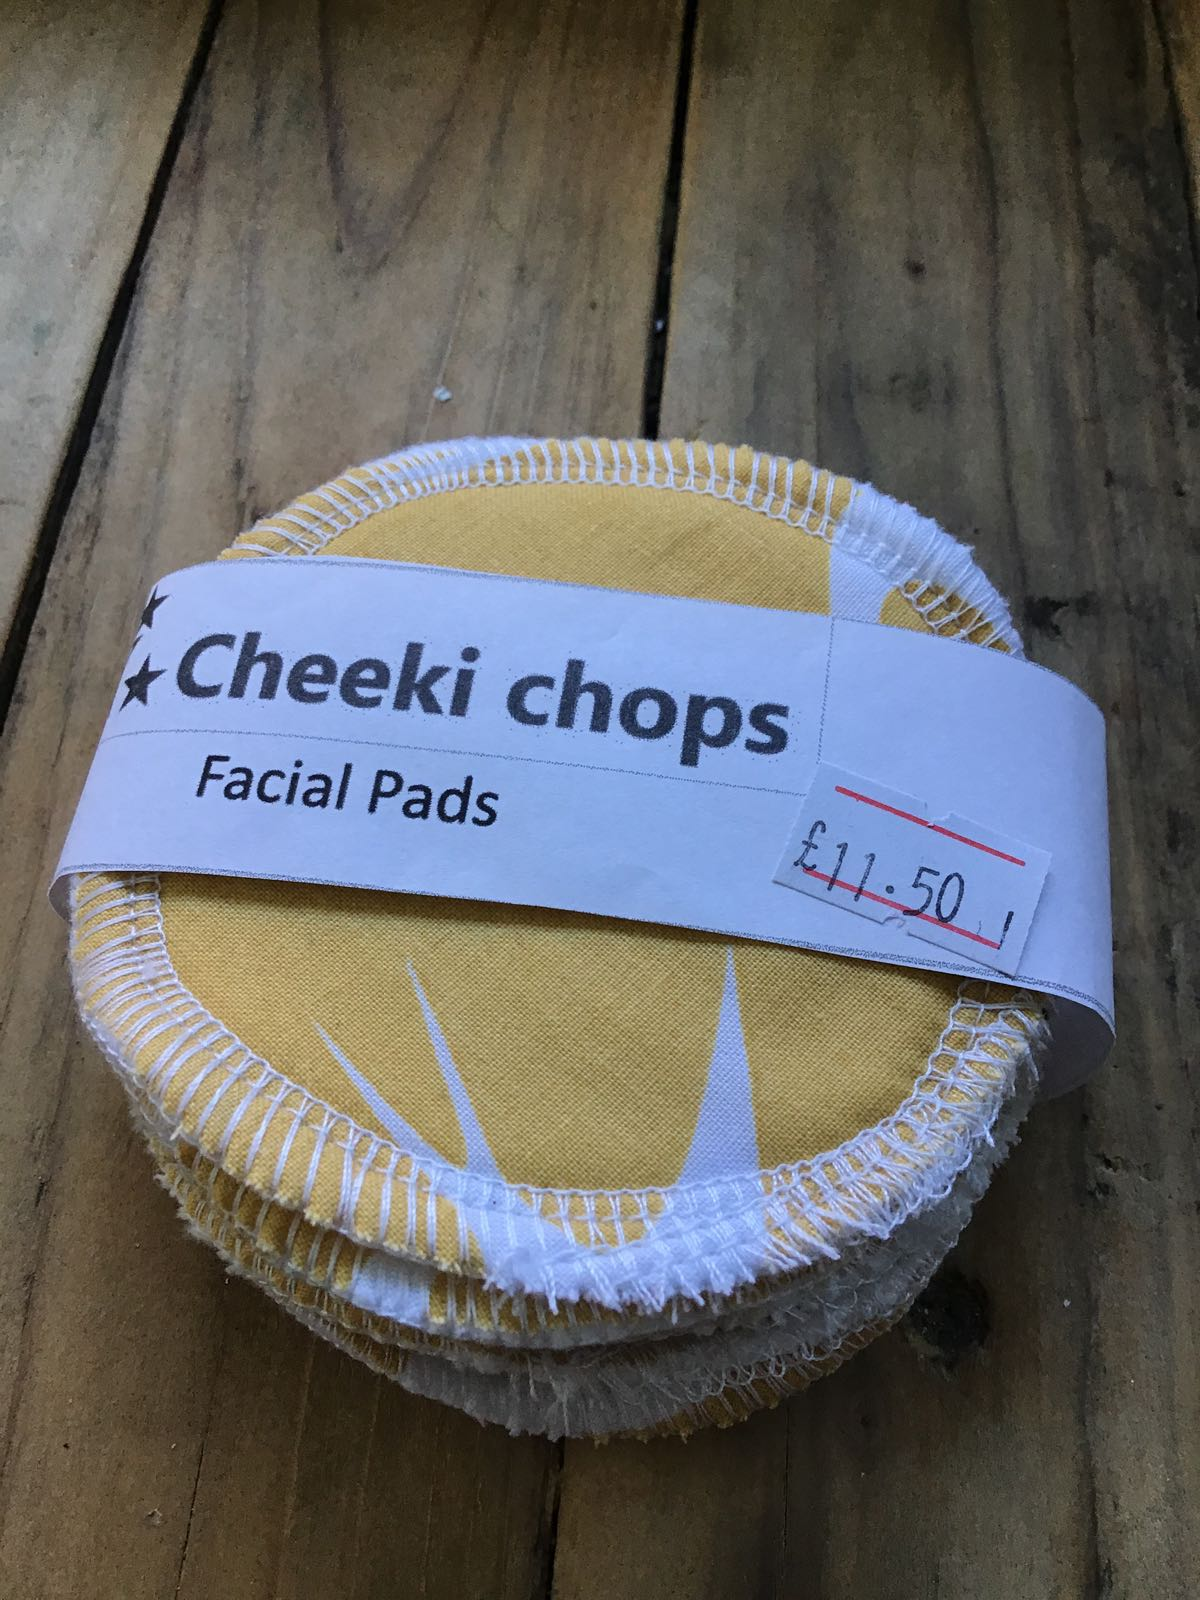 Facial round pads, washable (10 pads) by Cheeki Chops